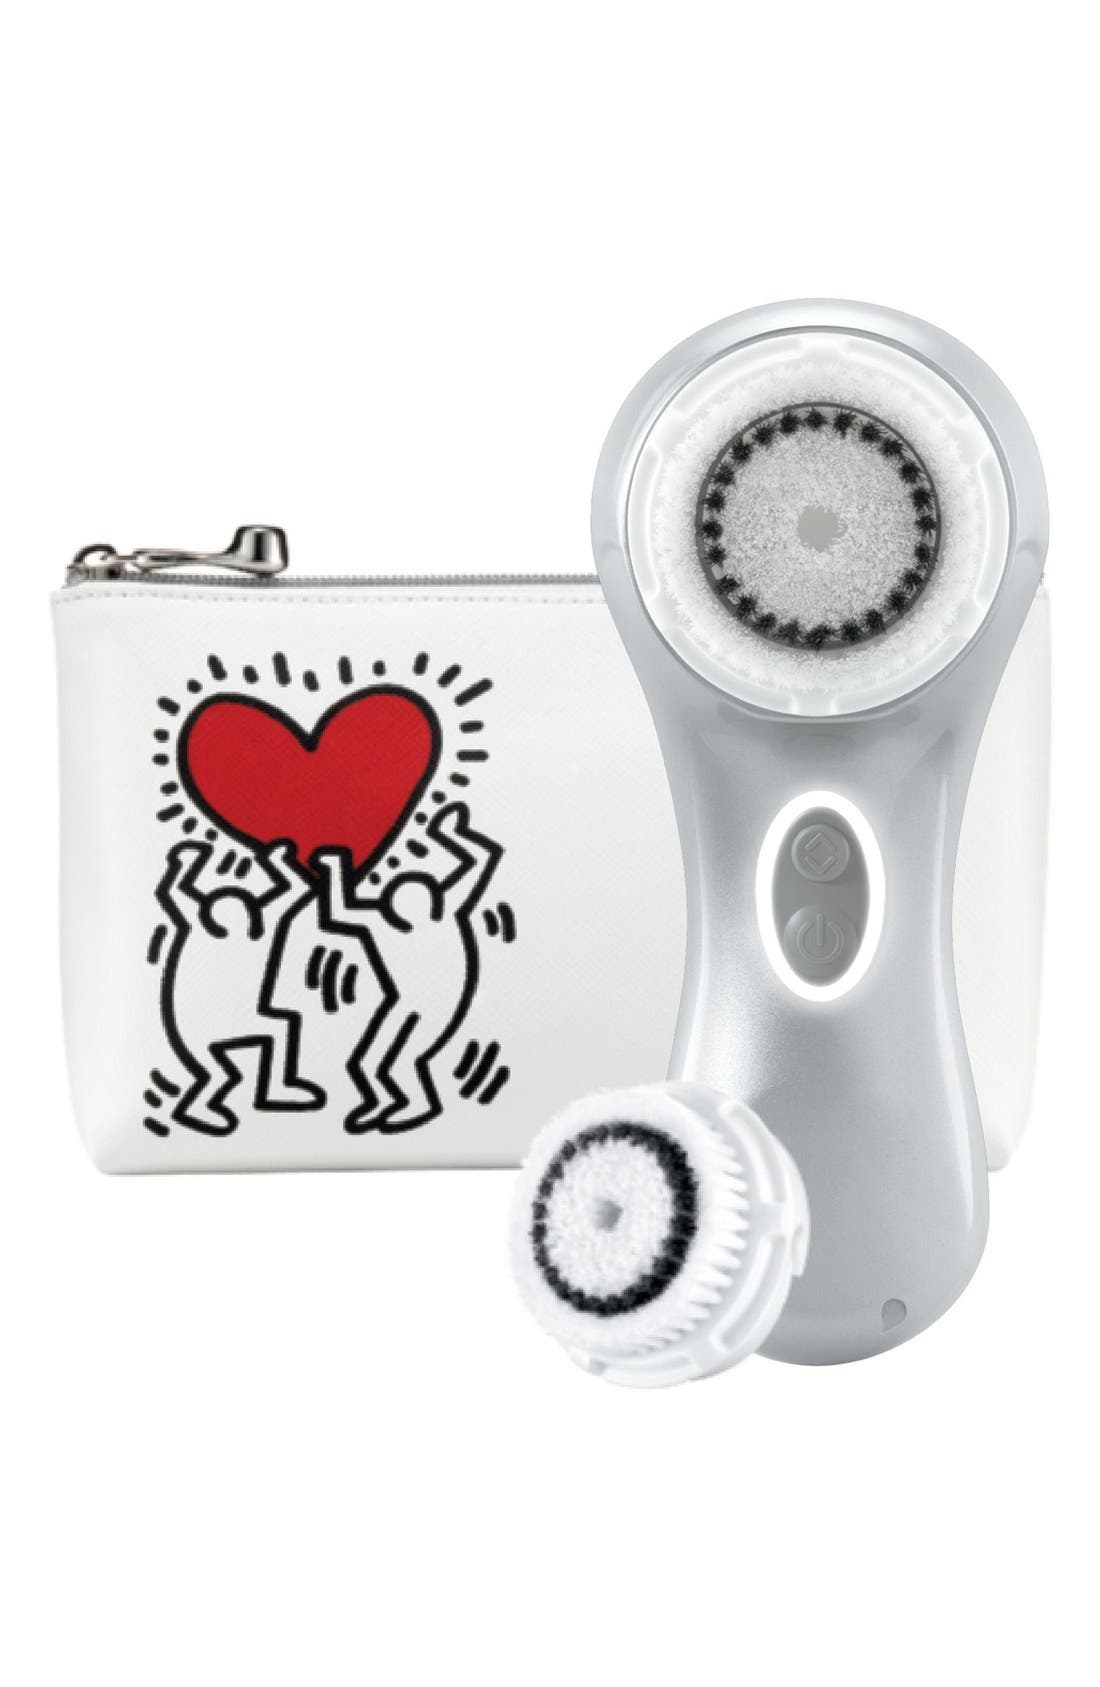 'Mia 2 - Keith Haring Silver' Sonic Skin Cleansing System,                             Main thumbnail 1, color,                             000